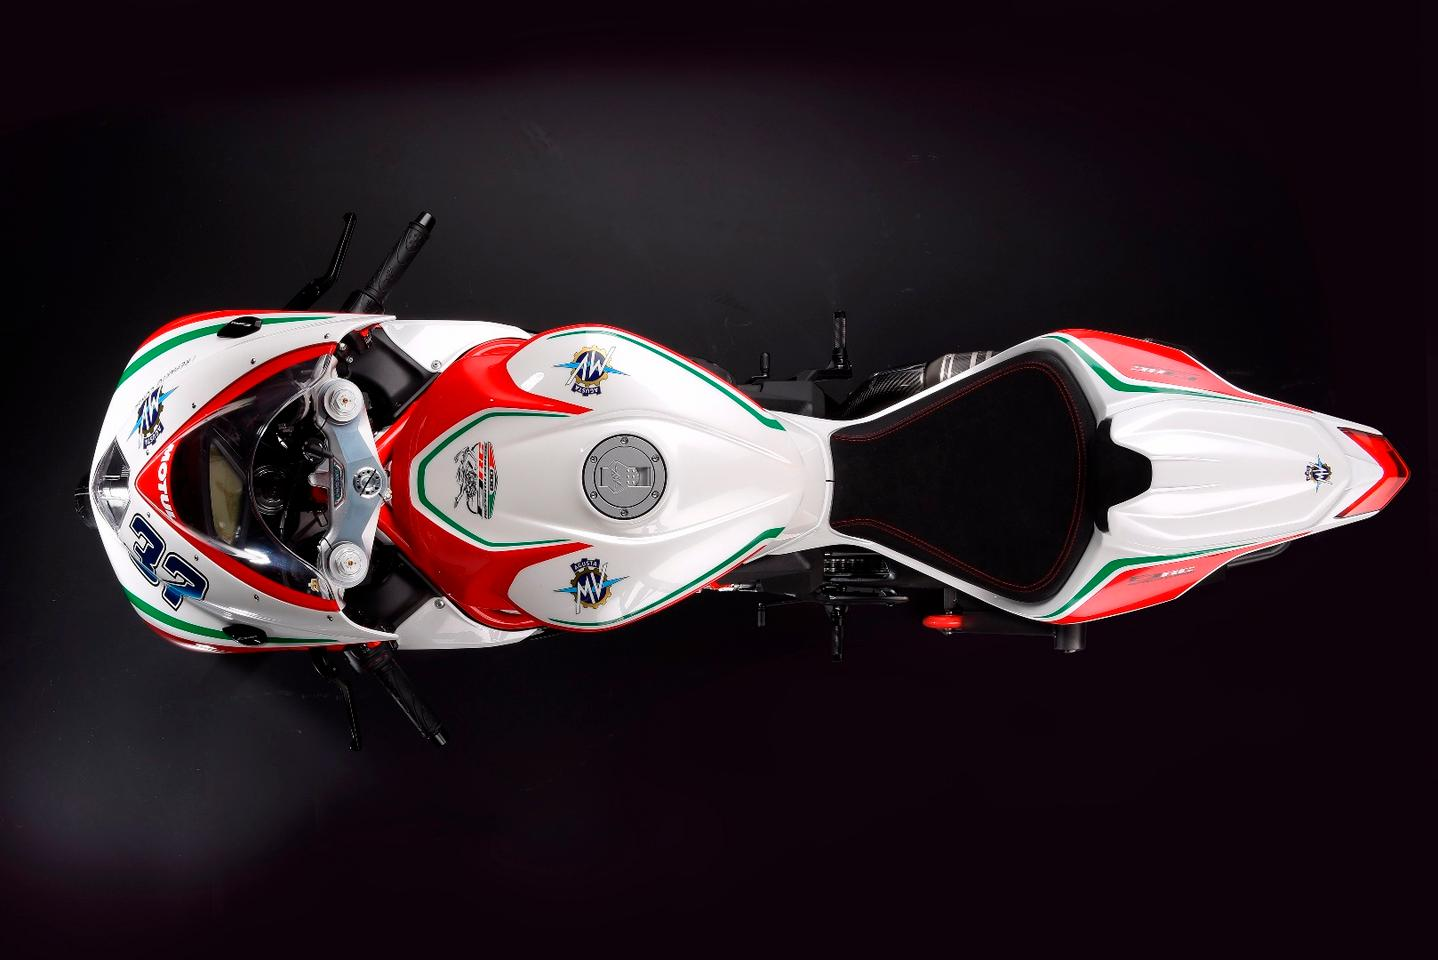 The MV Agusta F3 675 and 800 RC are primarily designed for the race track